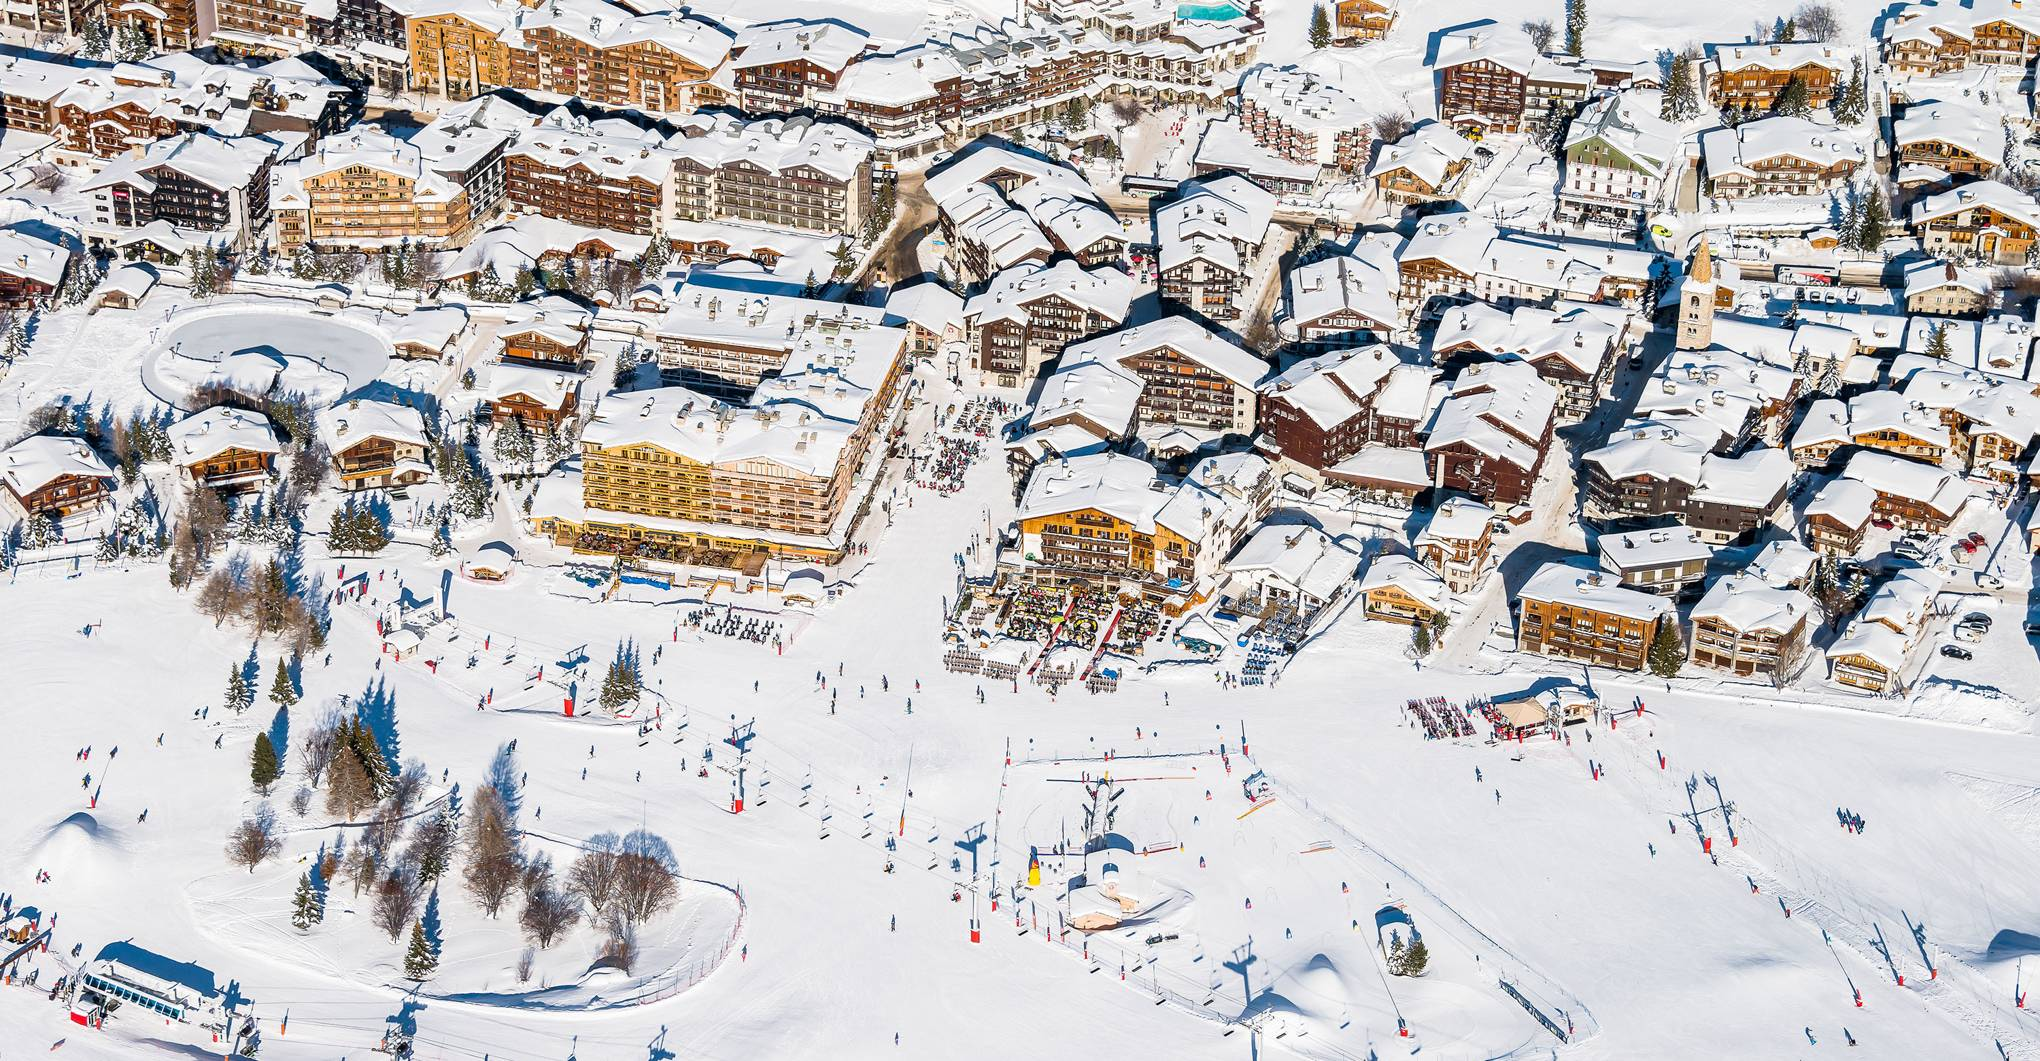 Things to do in Val d'Isère